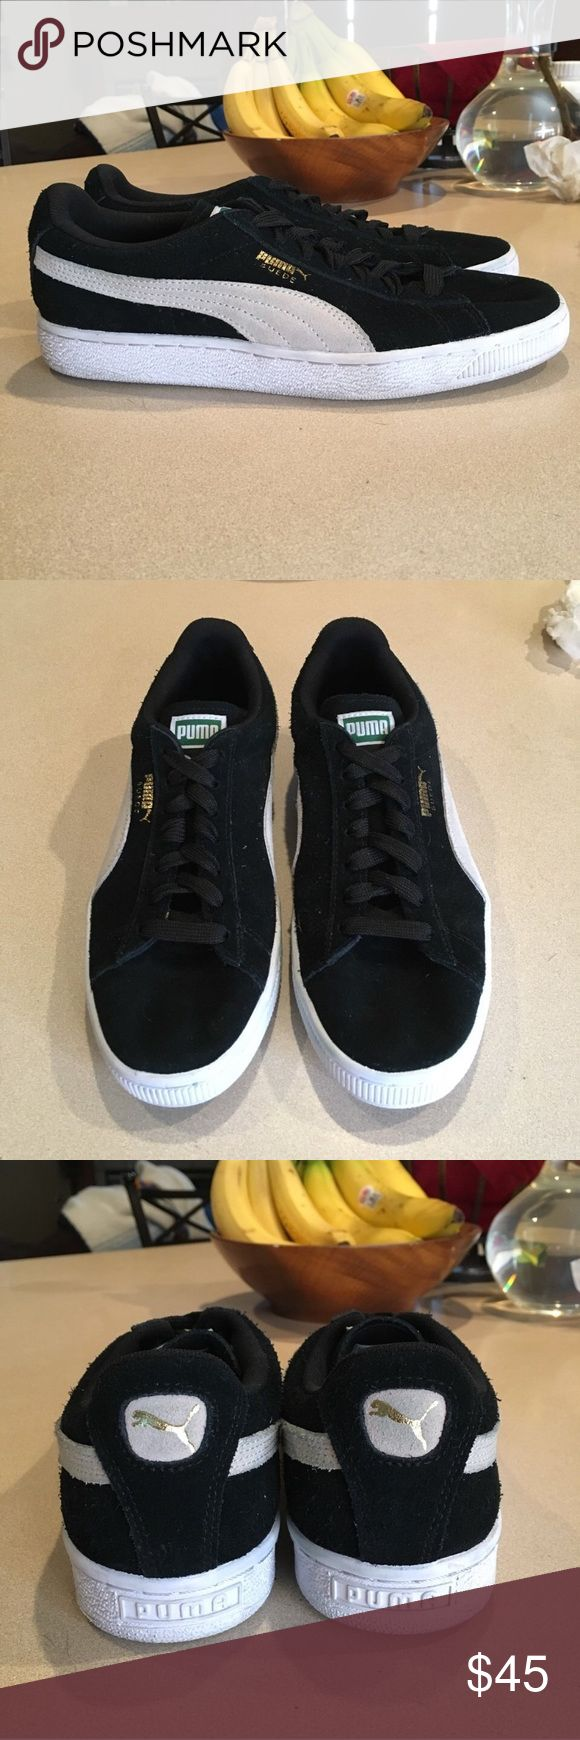 Black Puma Suede's Gently worn, great condition !!  Size: Women's 8 Retail price: $65 Puma Shoes